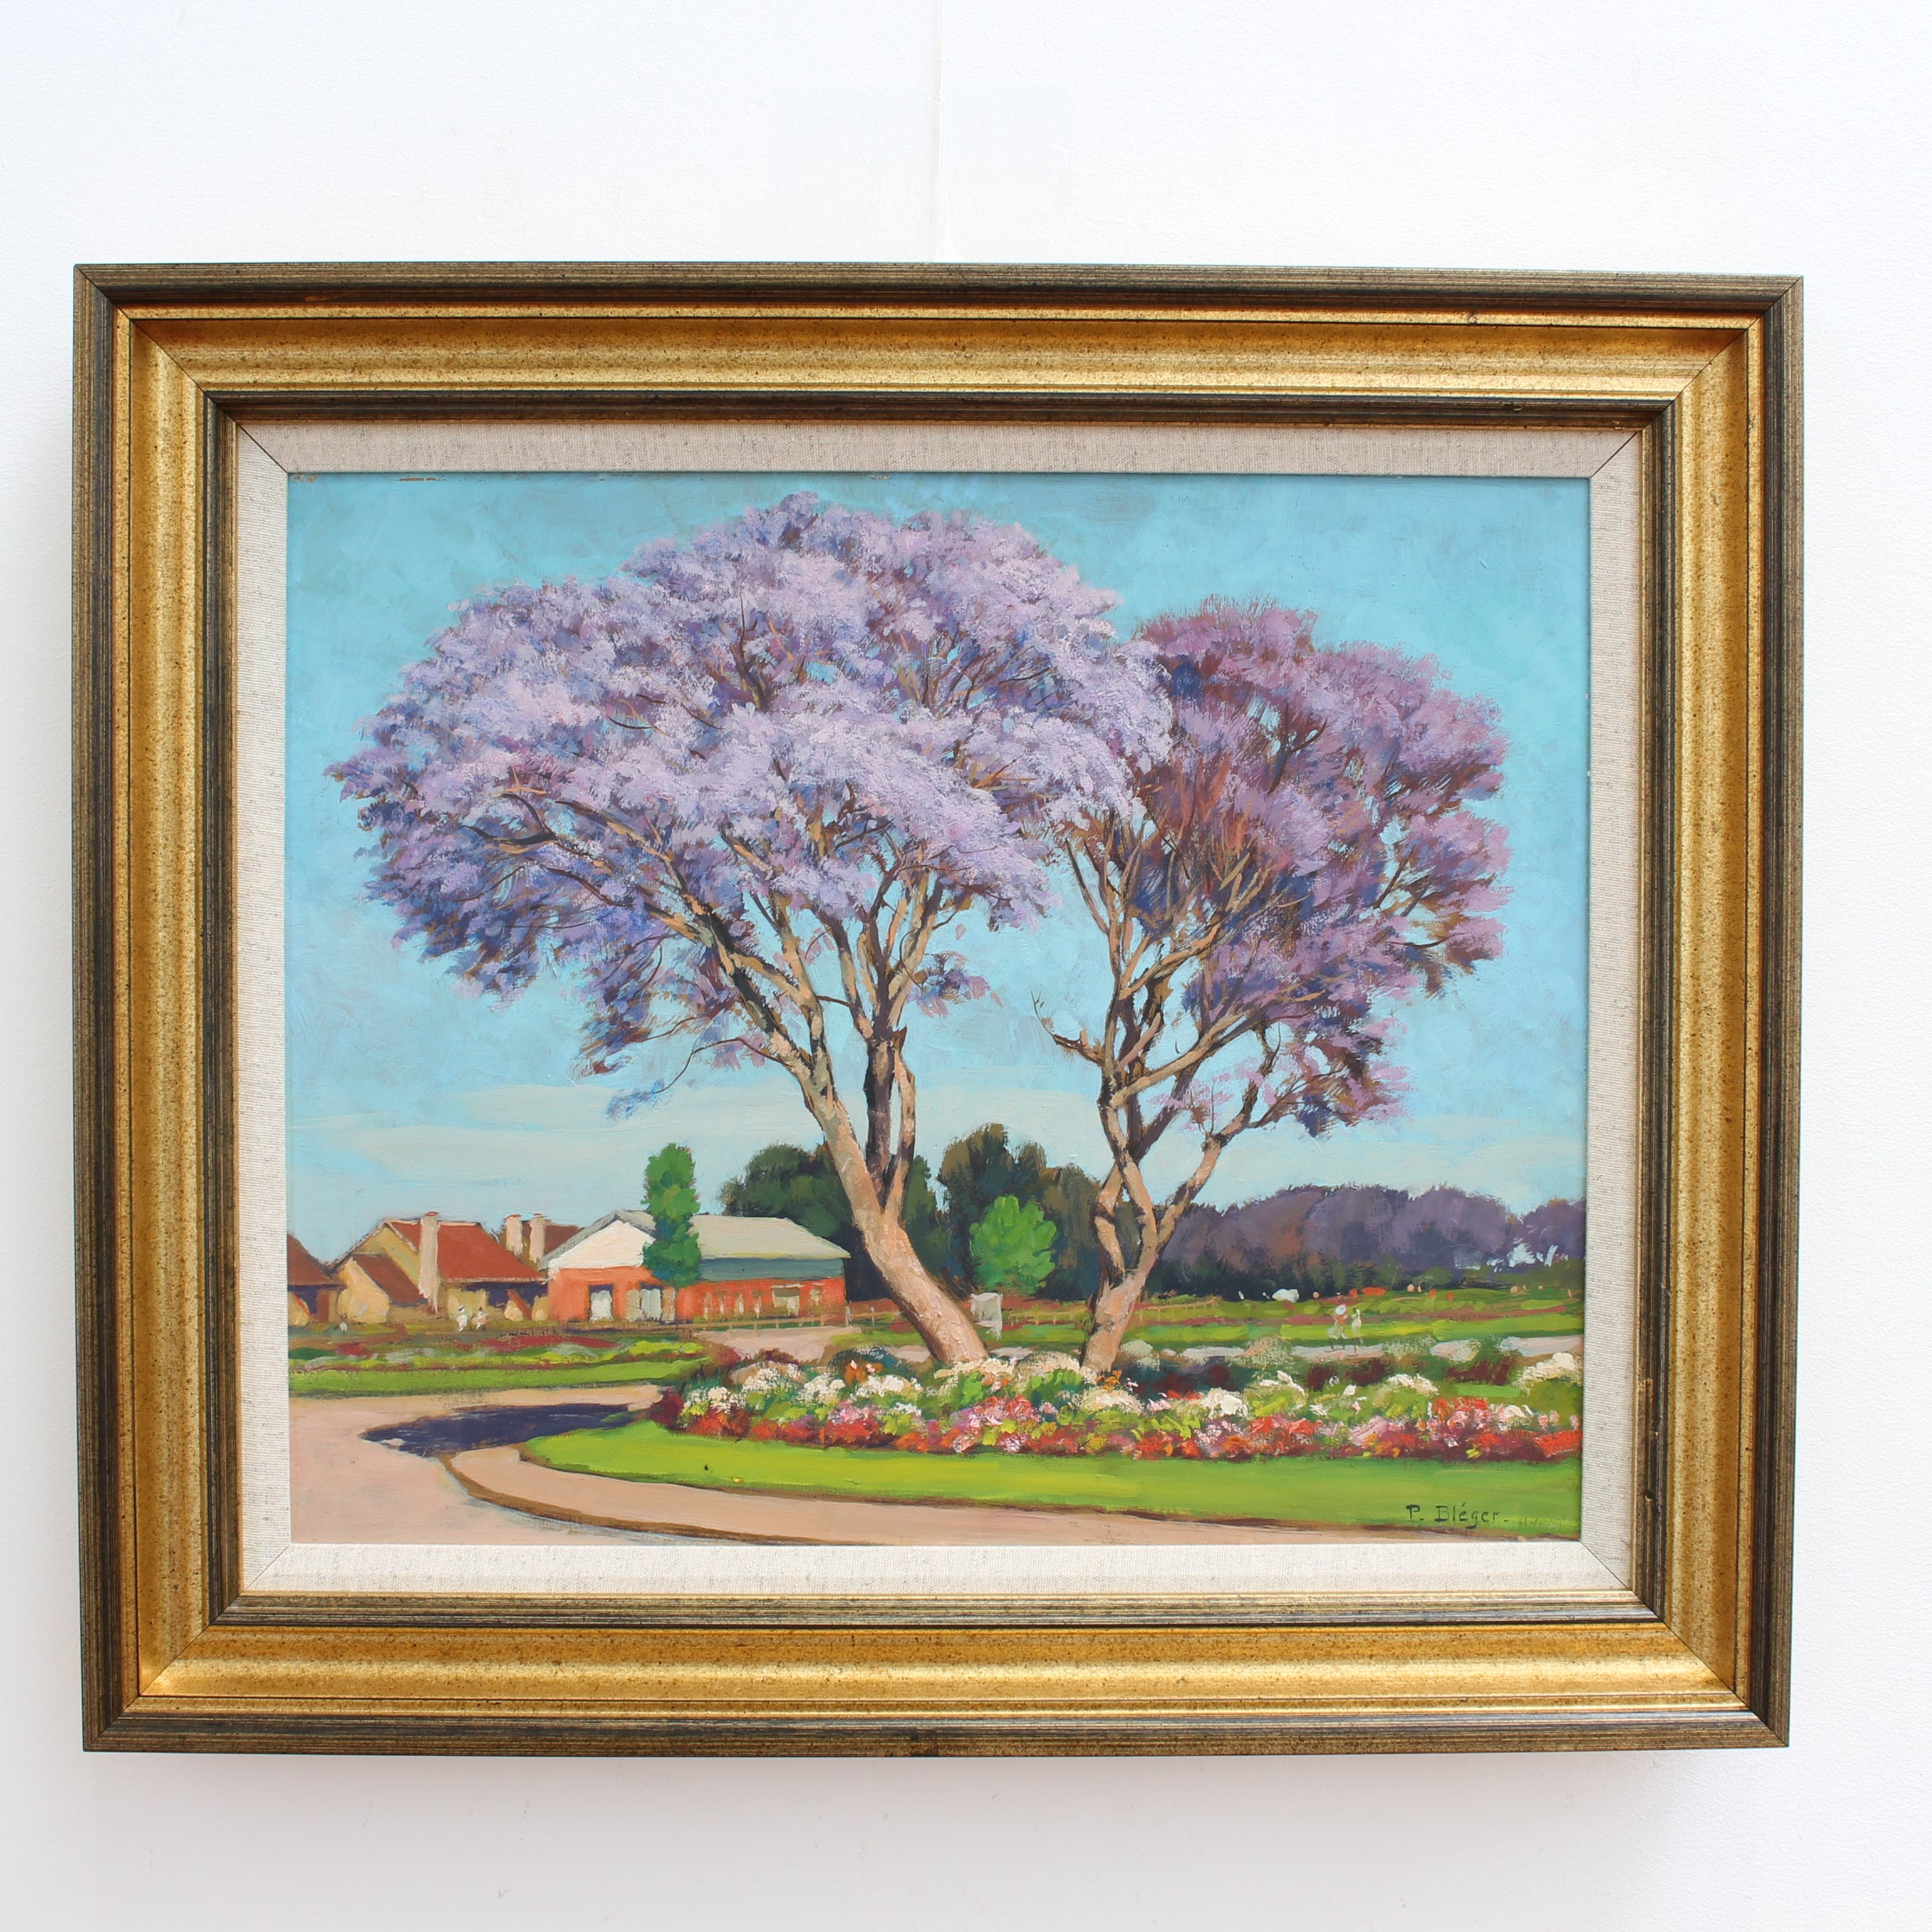 'The Purple Trees of Madagascar' by Paul Léon Bléger (circa 1930s-40s)